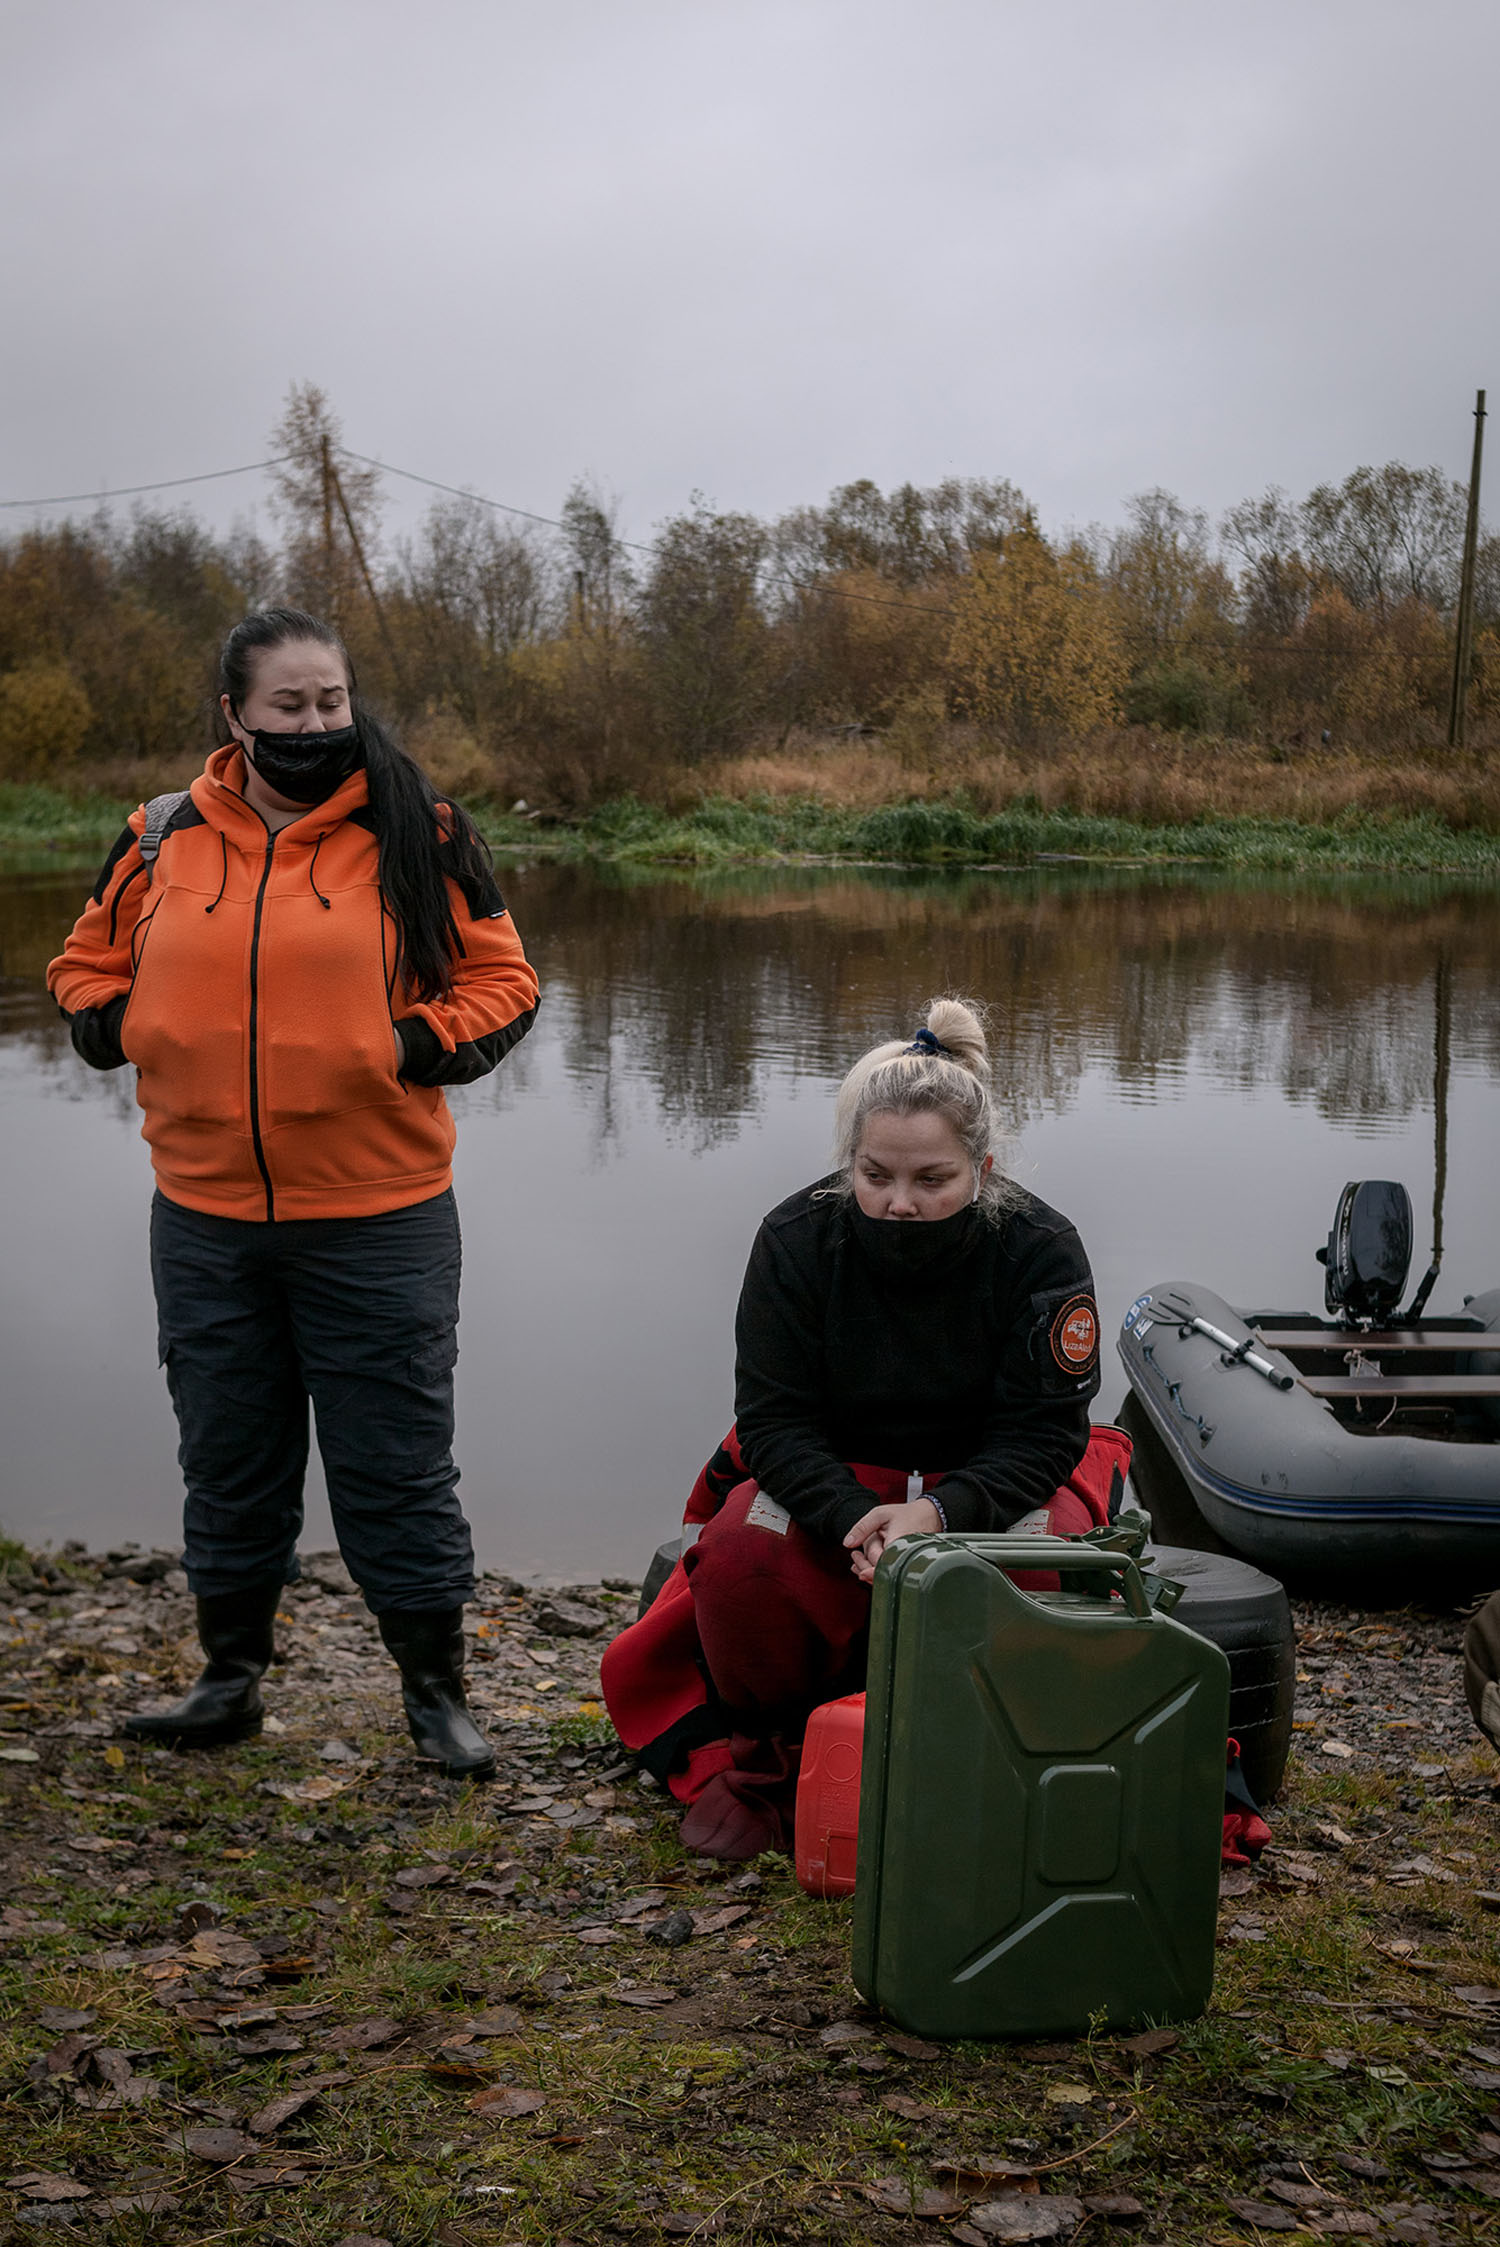 Volunteers carrying out an underwater search in Novoladozhsky canal.